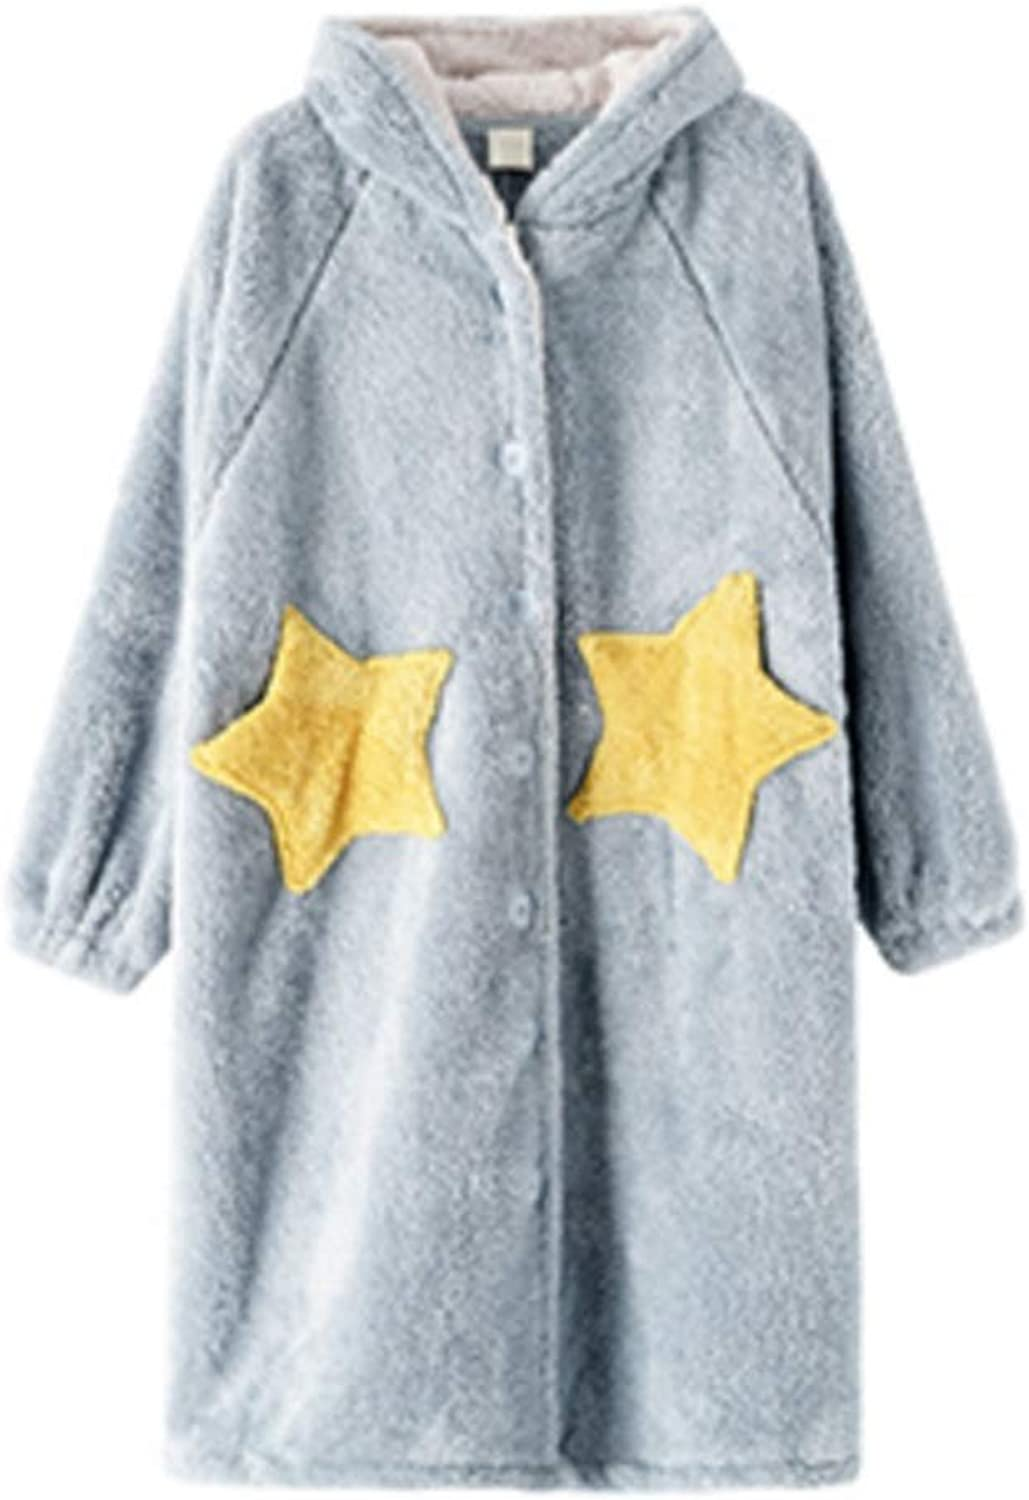 NAN Liang Womens Luxury Soft Cotton Bath Robe Housecoat Dressing Gown Bathrobe Knee Length 4 Soft (color   bluee, Size   M)